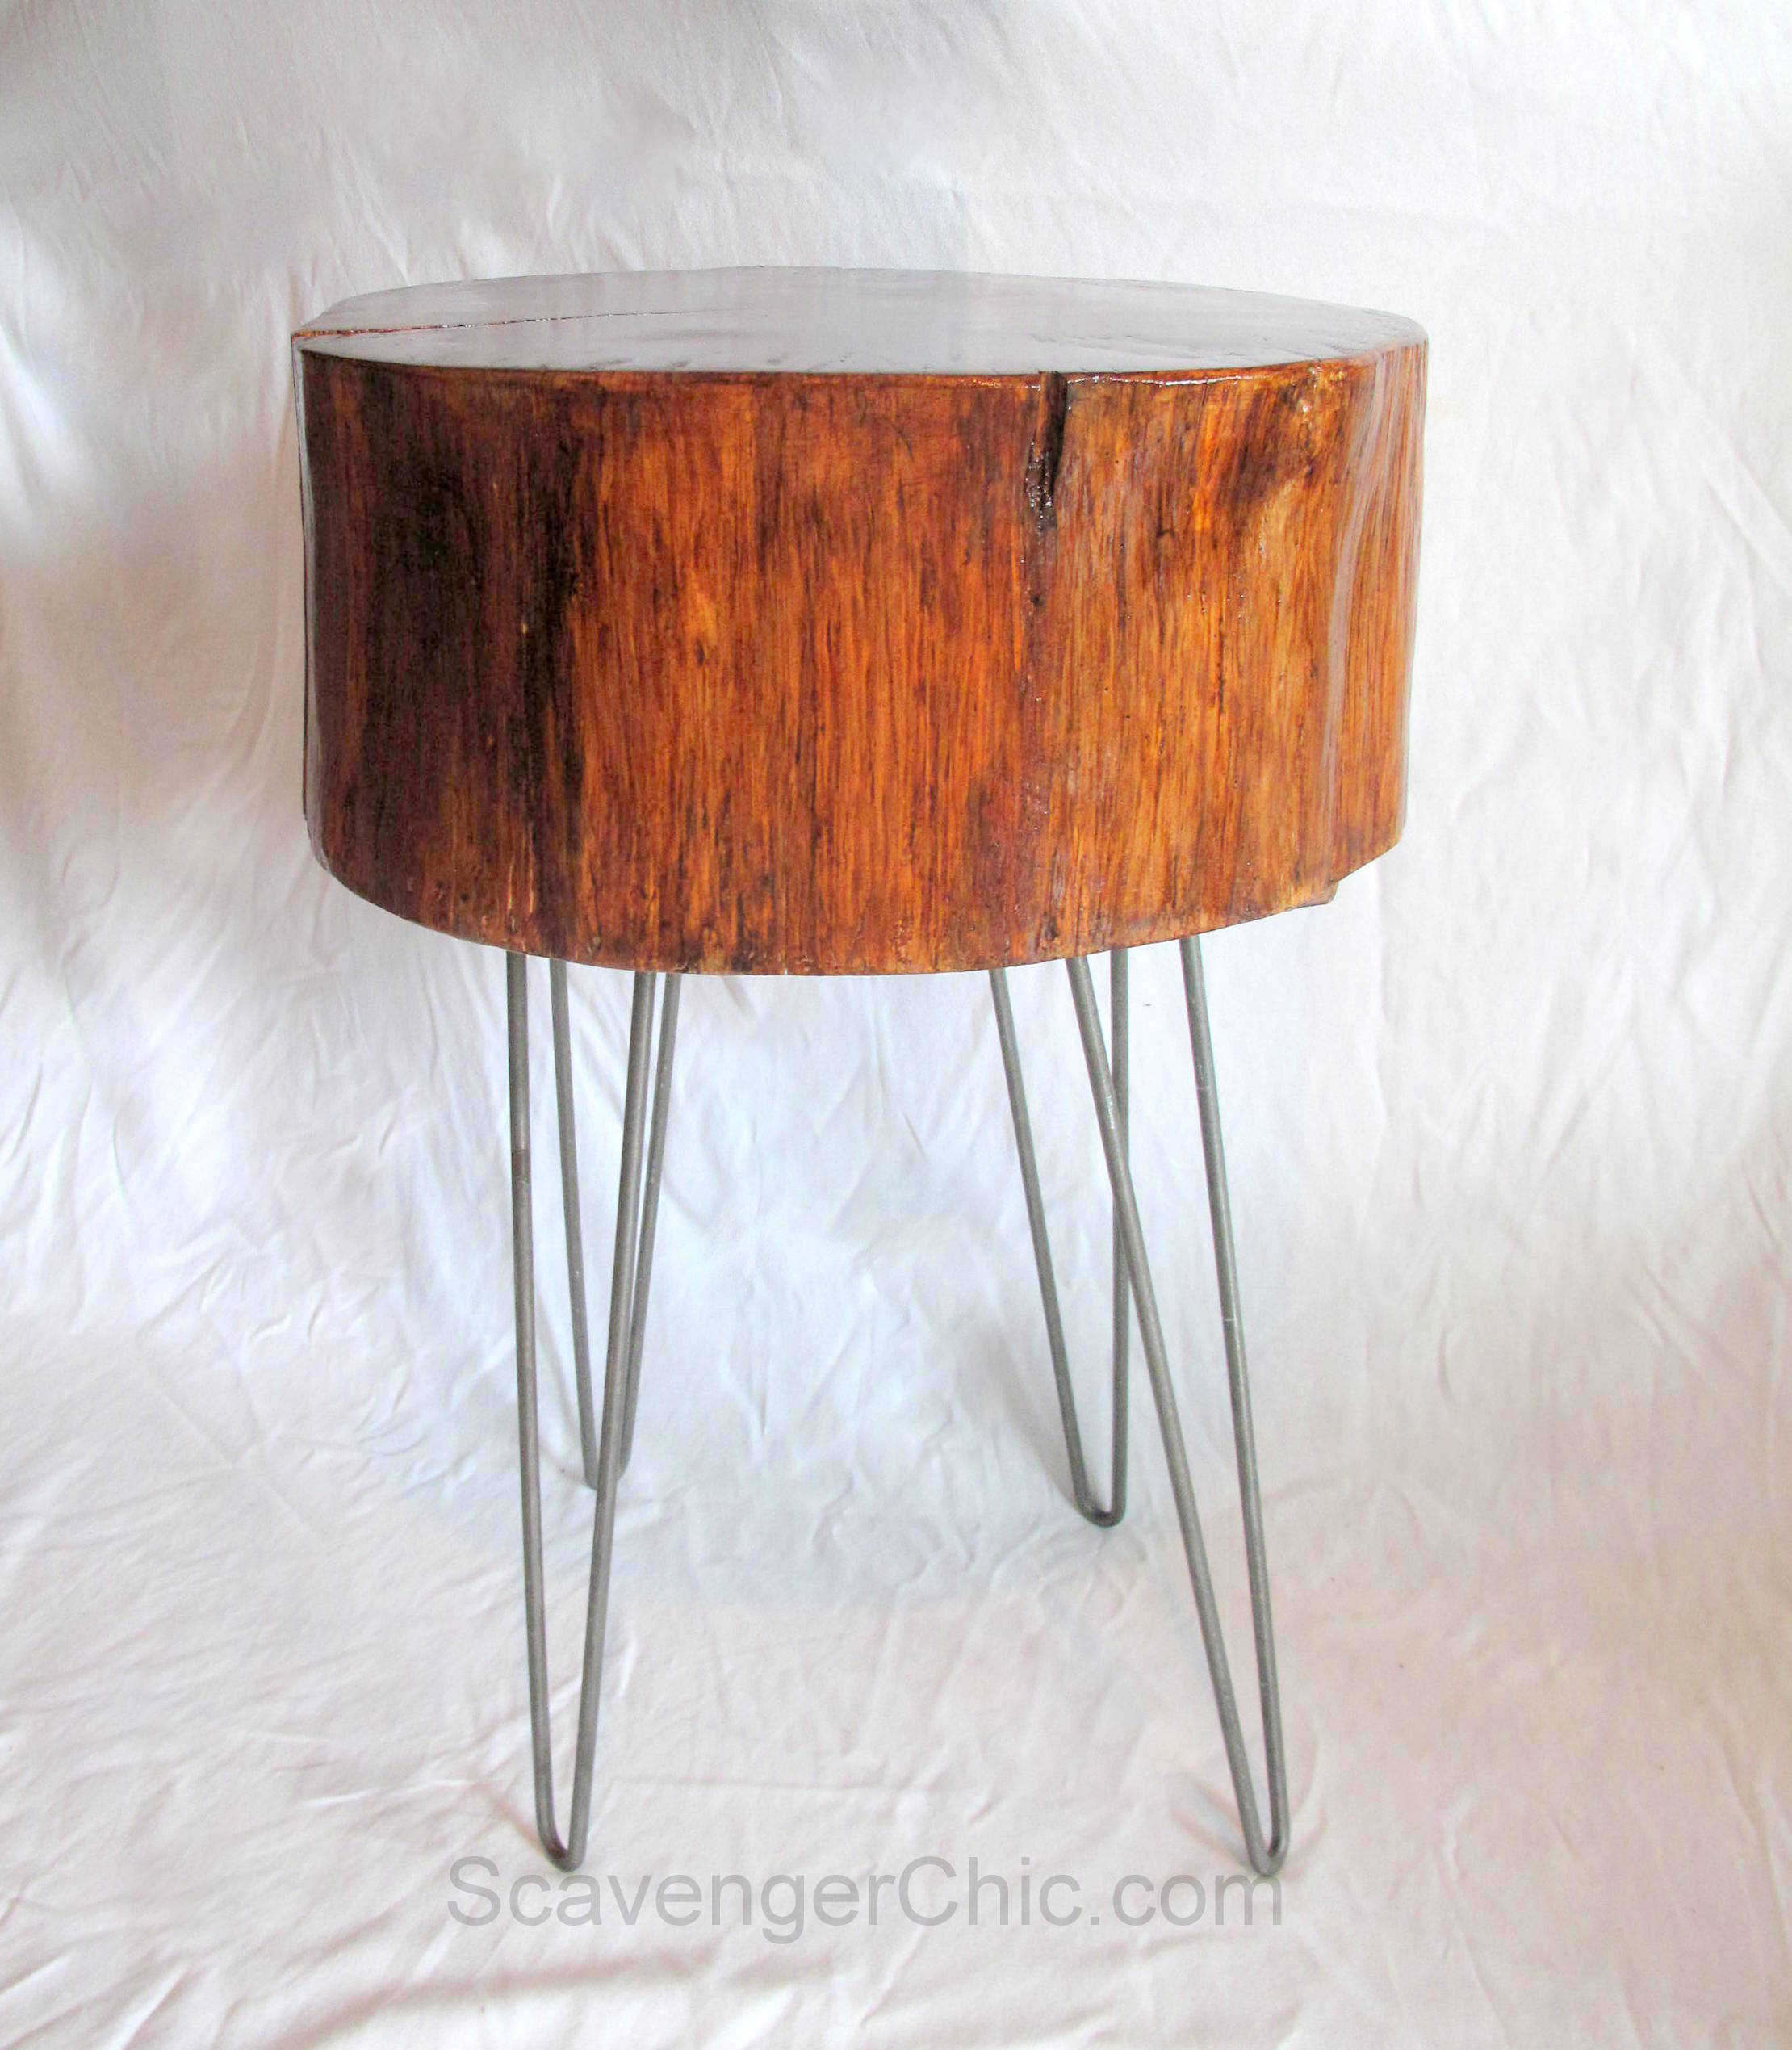 DIY Wood Slice End Table Scavenger Chic